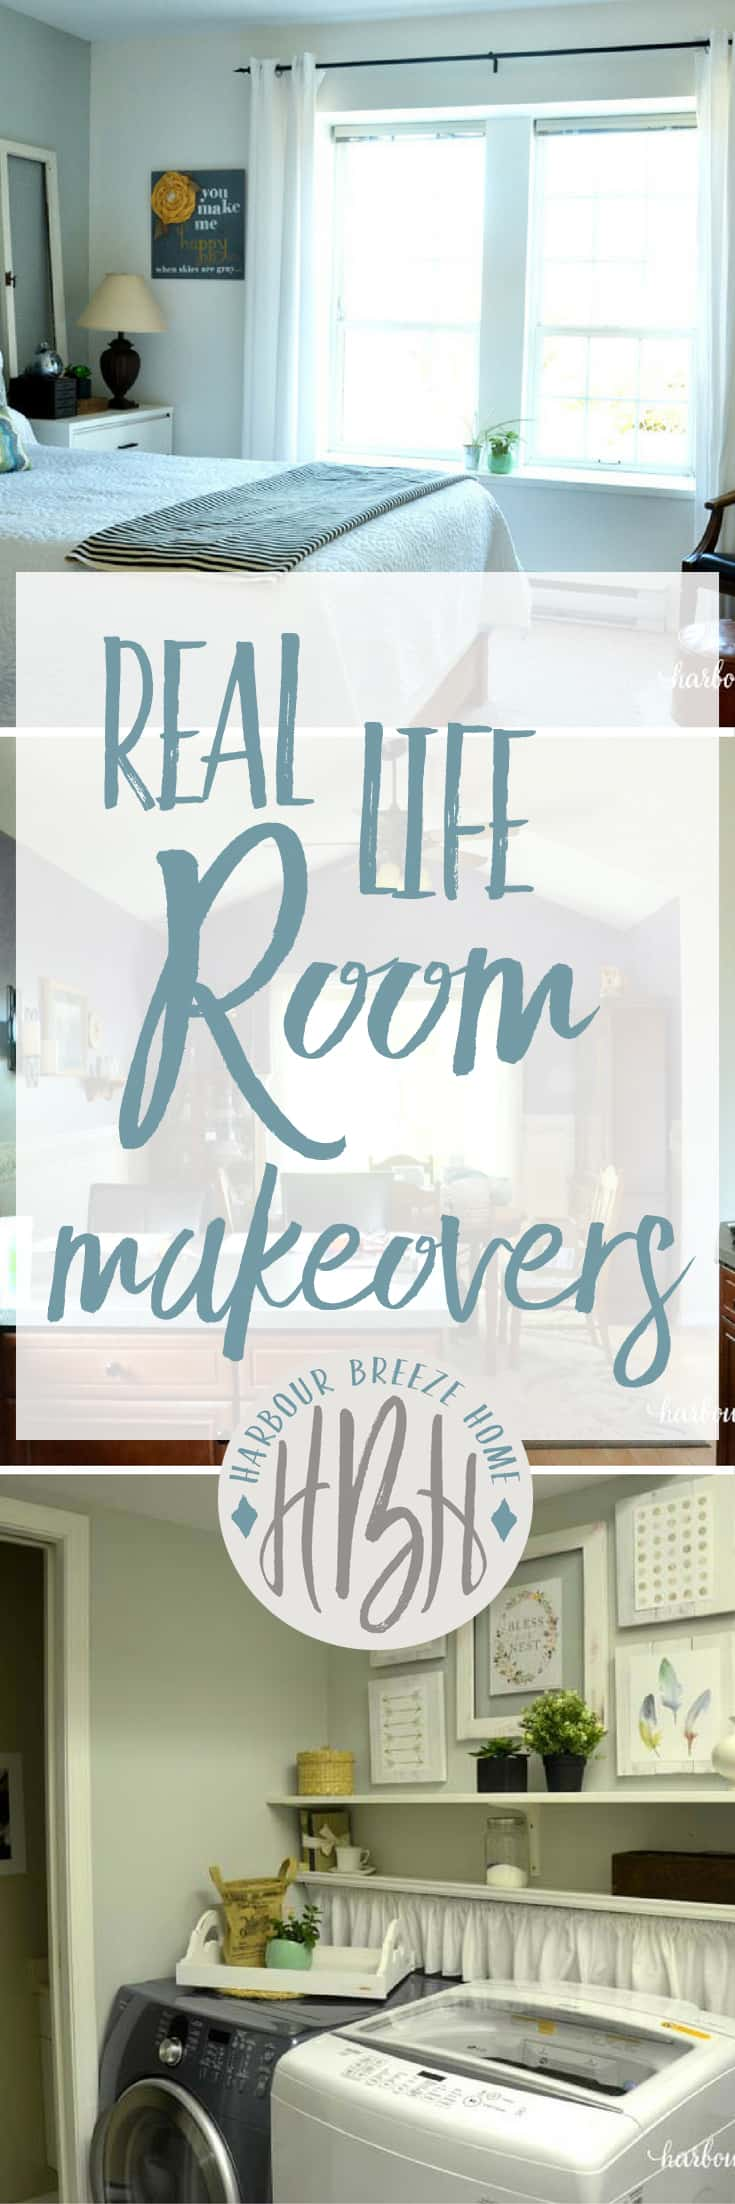 Budget Friendly Master Bedroom Tour 2018  YouTube